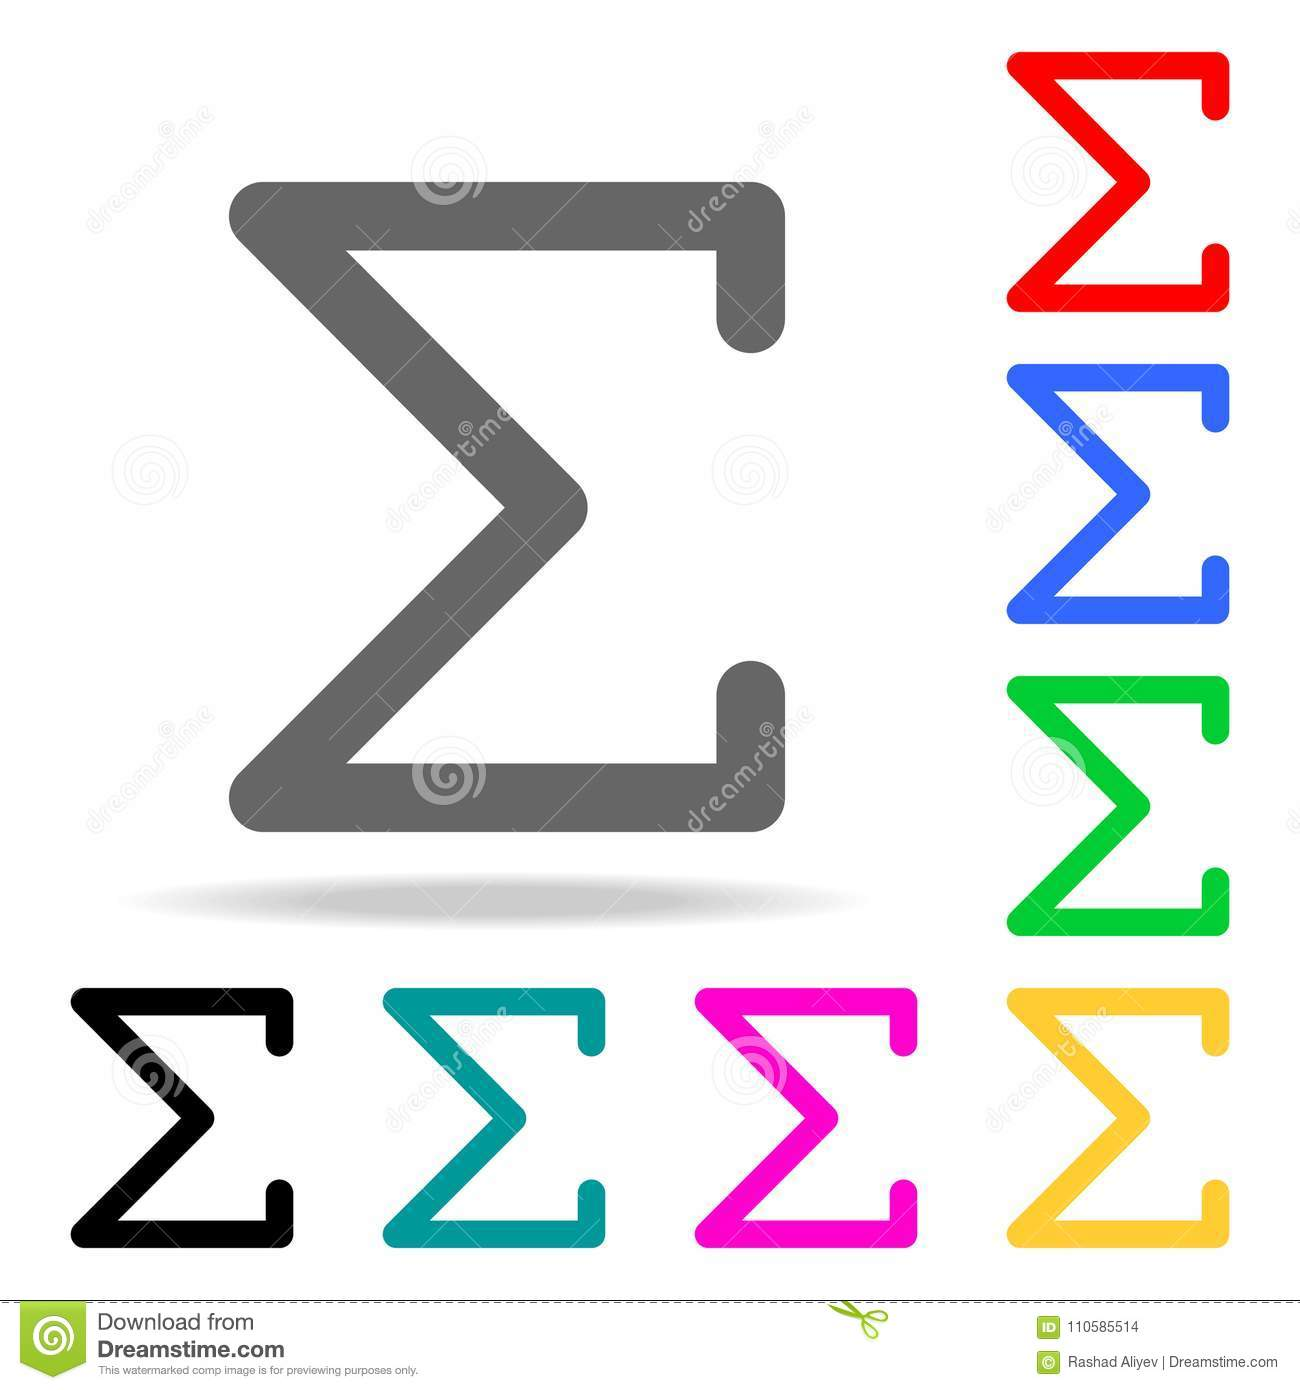 Sigma greek letter icon elements in multi colored icons for mobile sigma greek letter icon elements in multi colored icons for mobile concept and web apps icons for website design and development biocorpaavc Choice Image